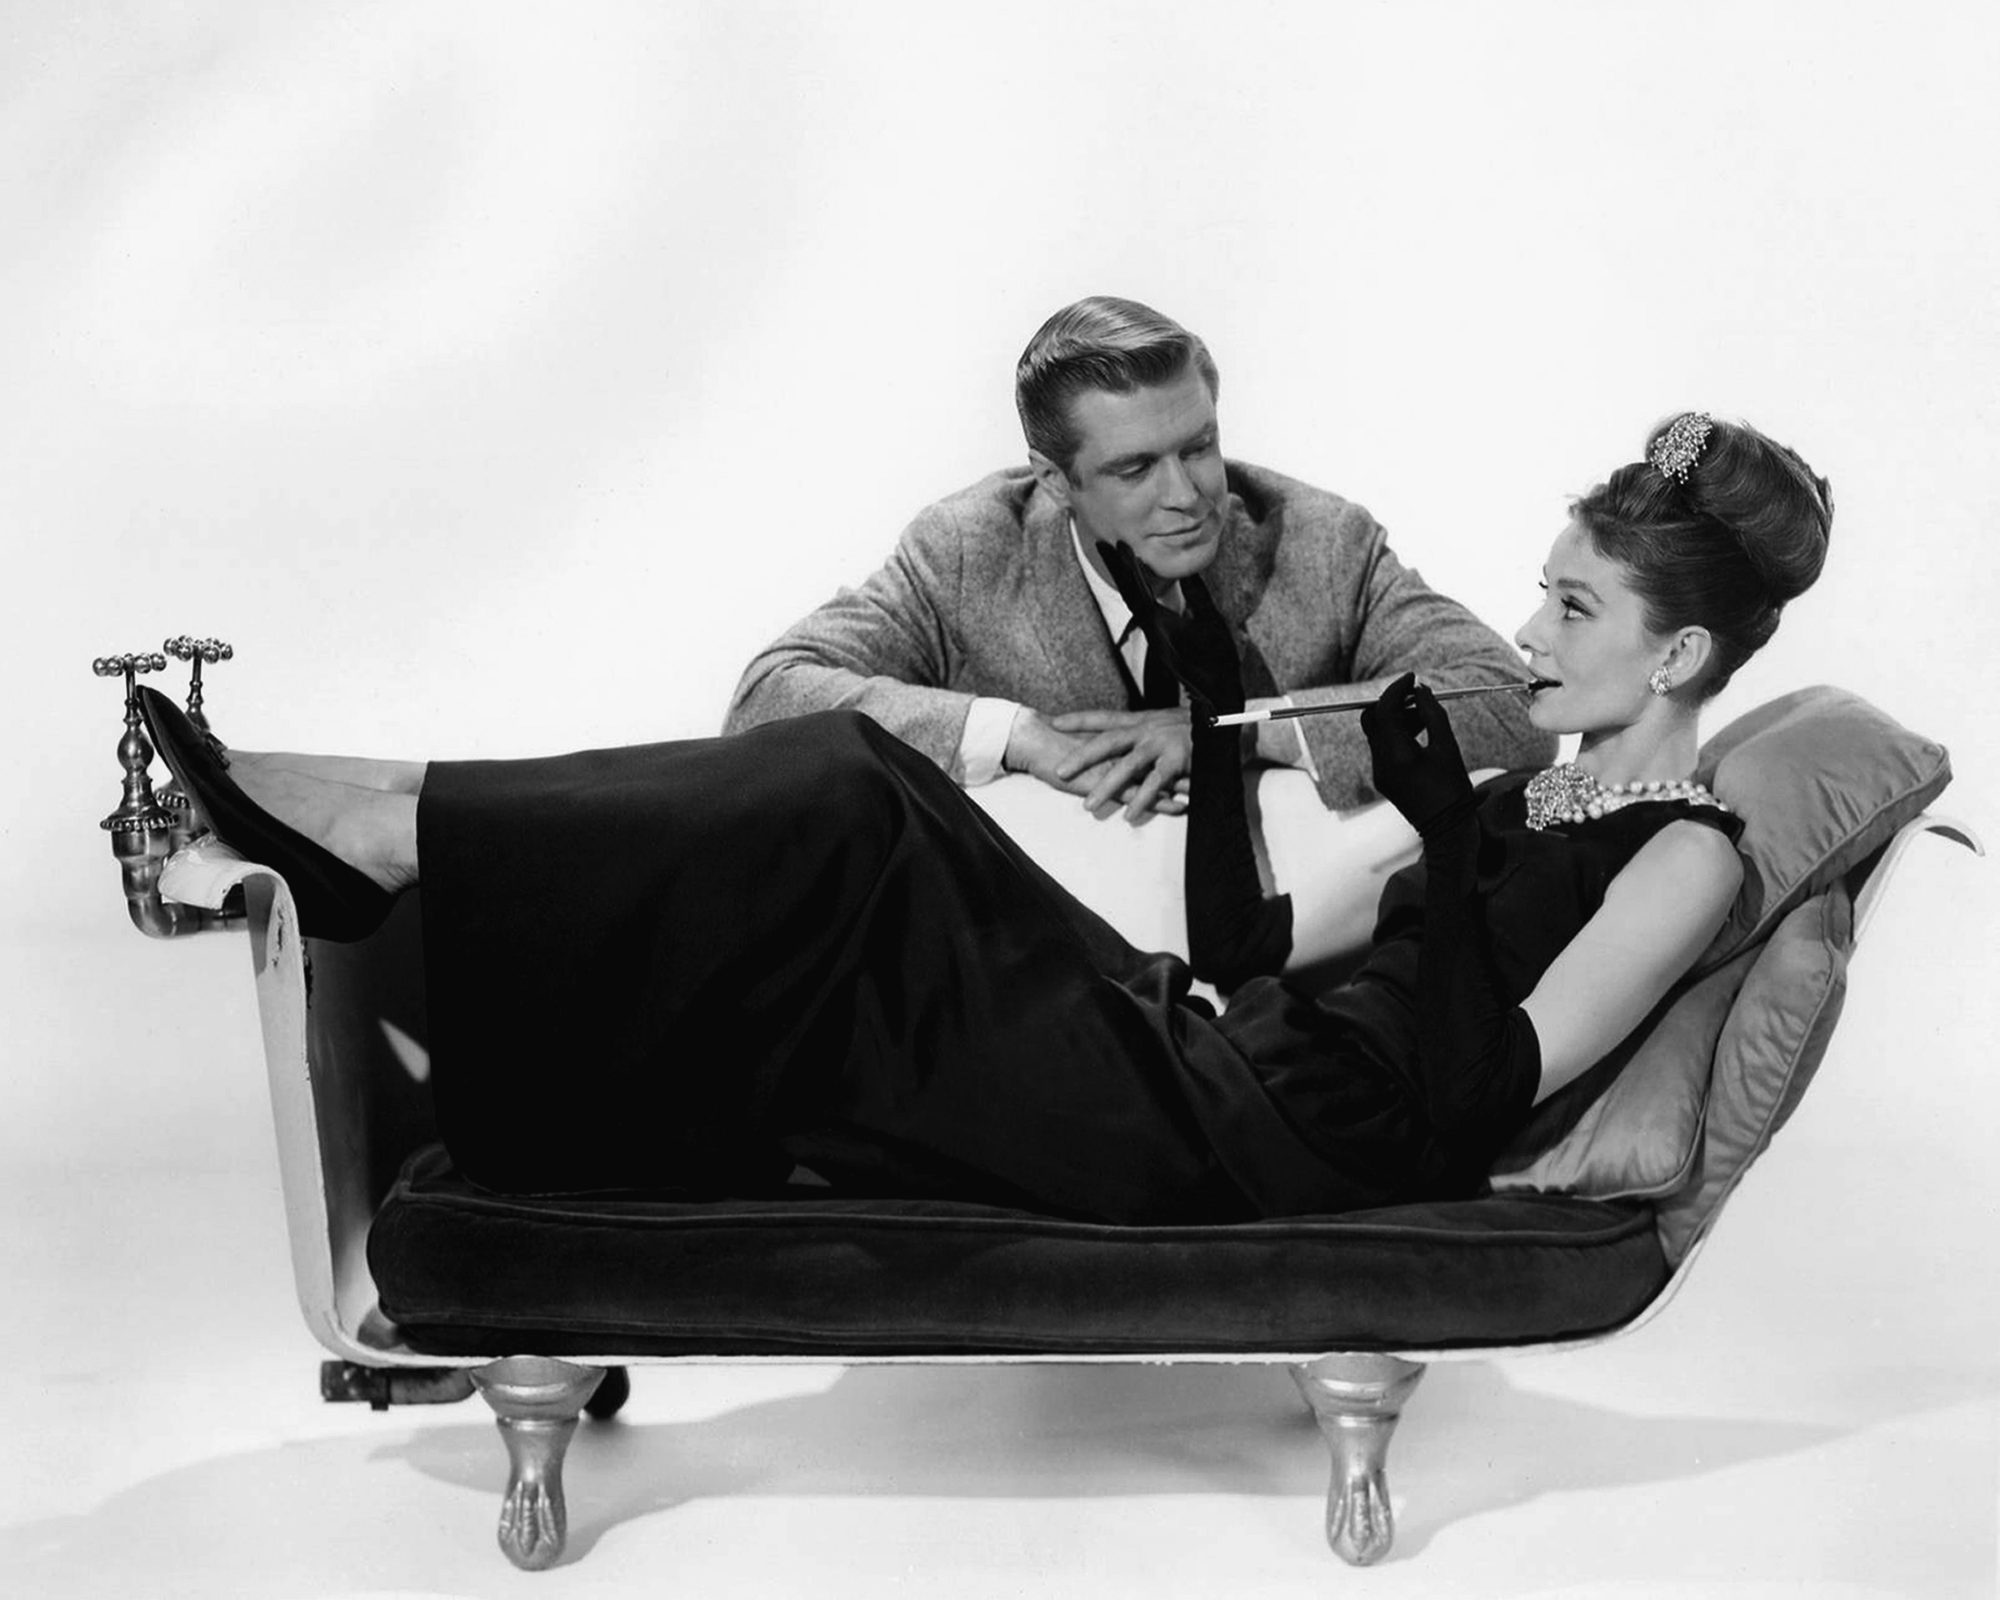 Breakfast at Tiffany's with Holly Golightly and Paul Varjak